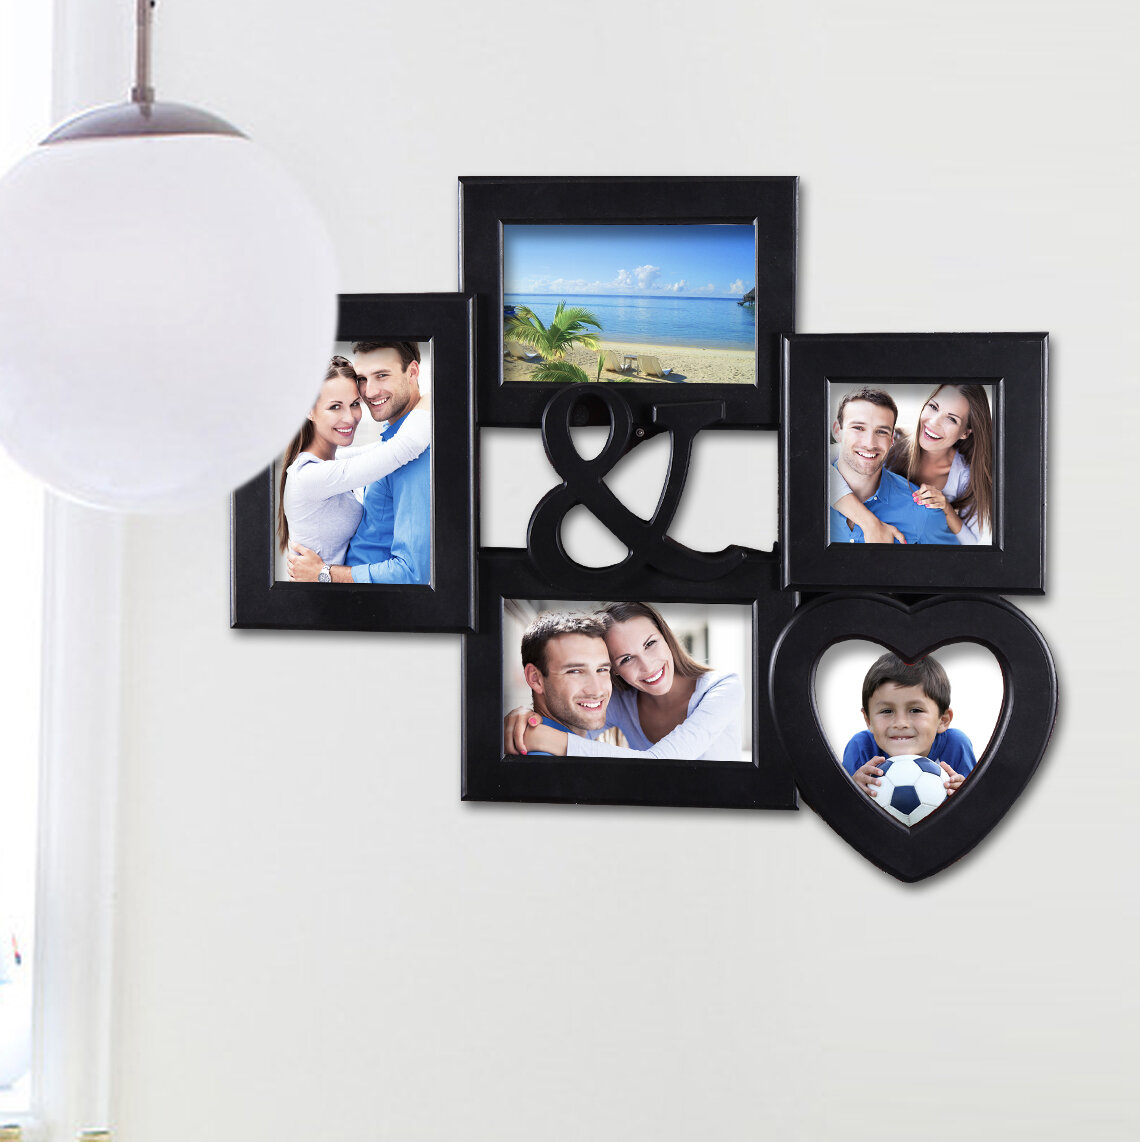 5 Opening Decorative Wall Hanging Collage Ampersand Picture Frame